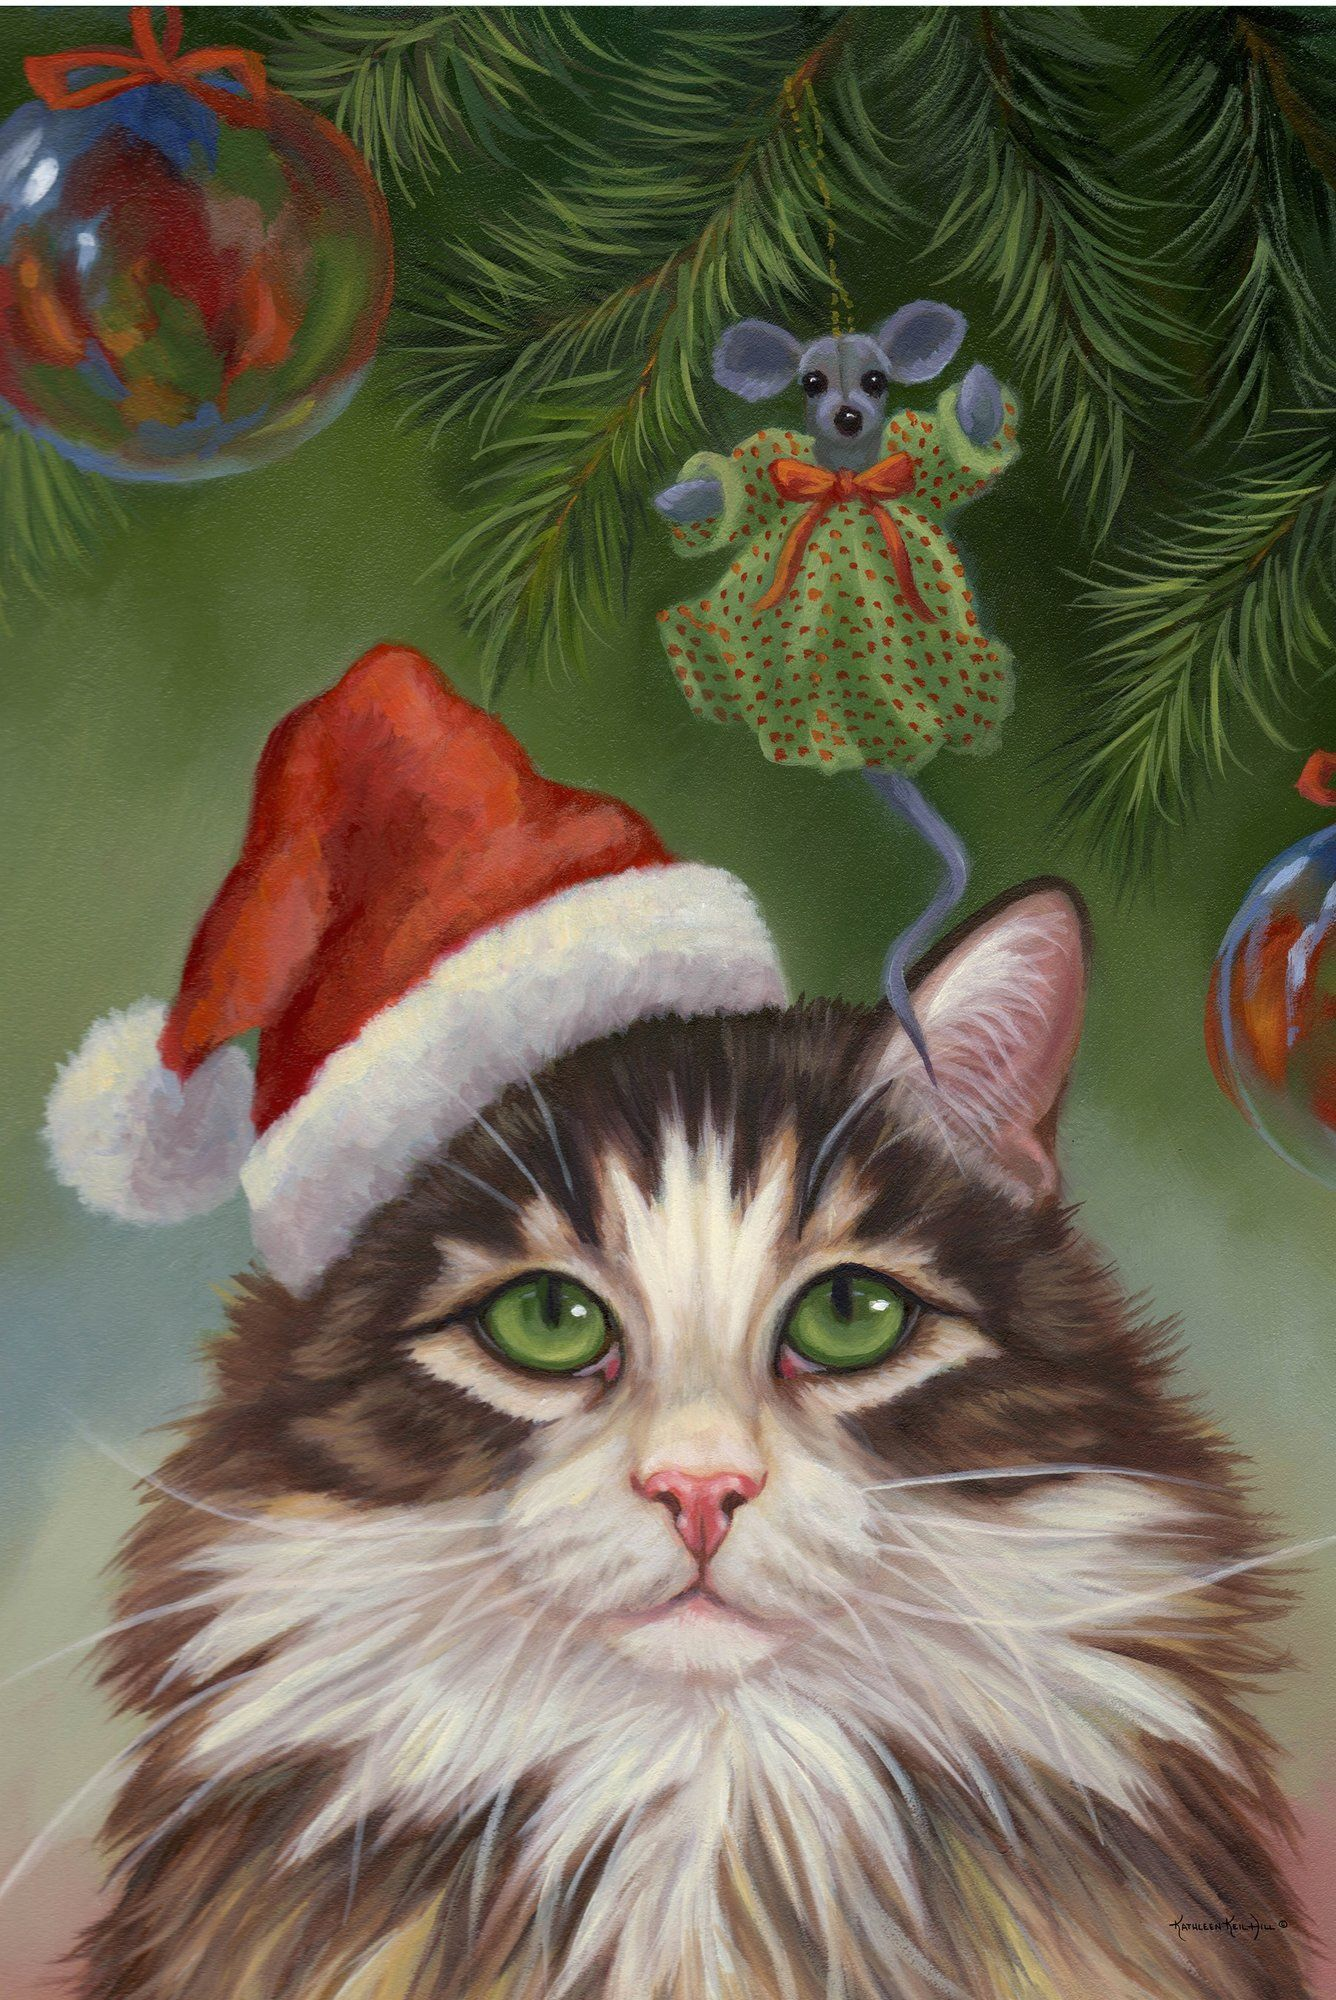 Believe Christmas Cat Garden Flag | Products | Pinterest | Flags and ...